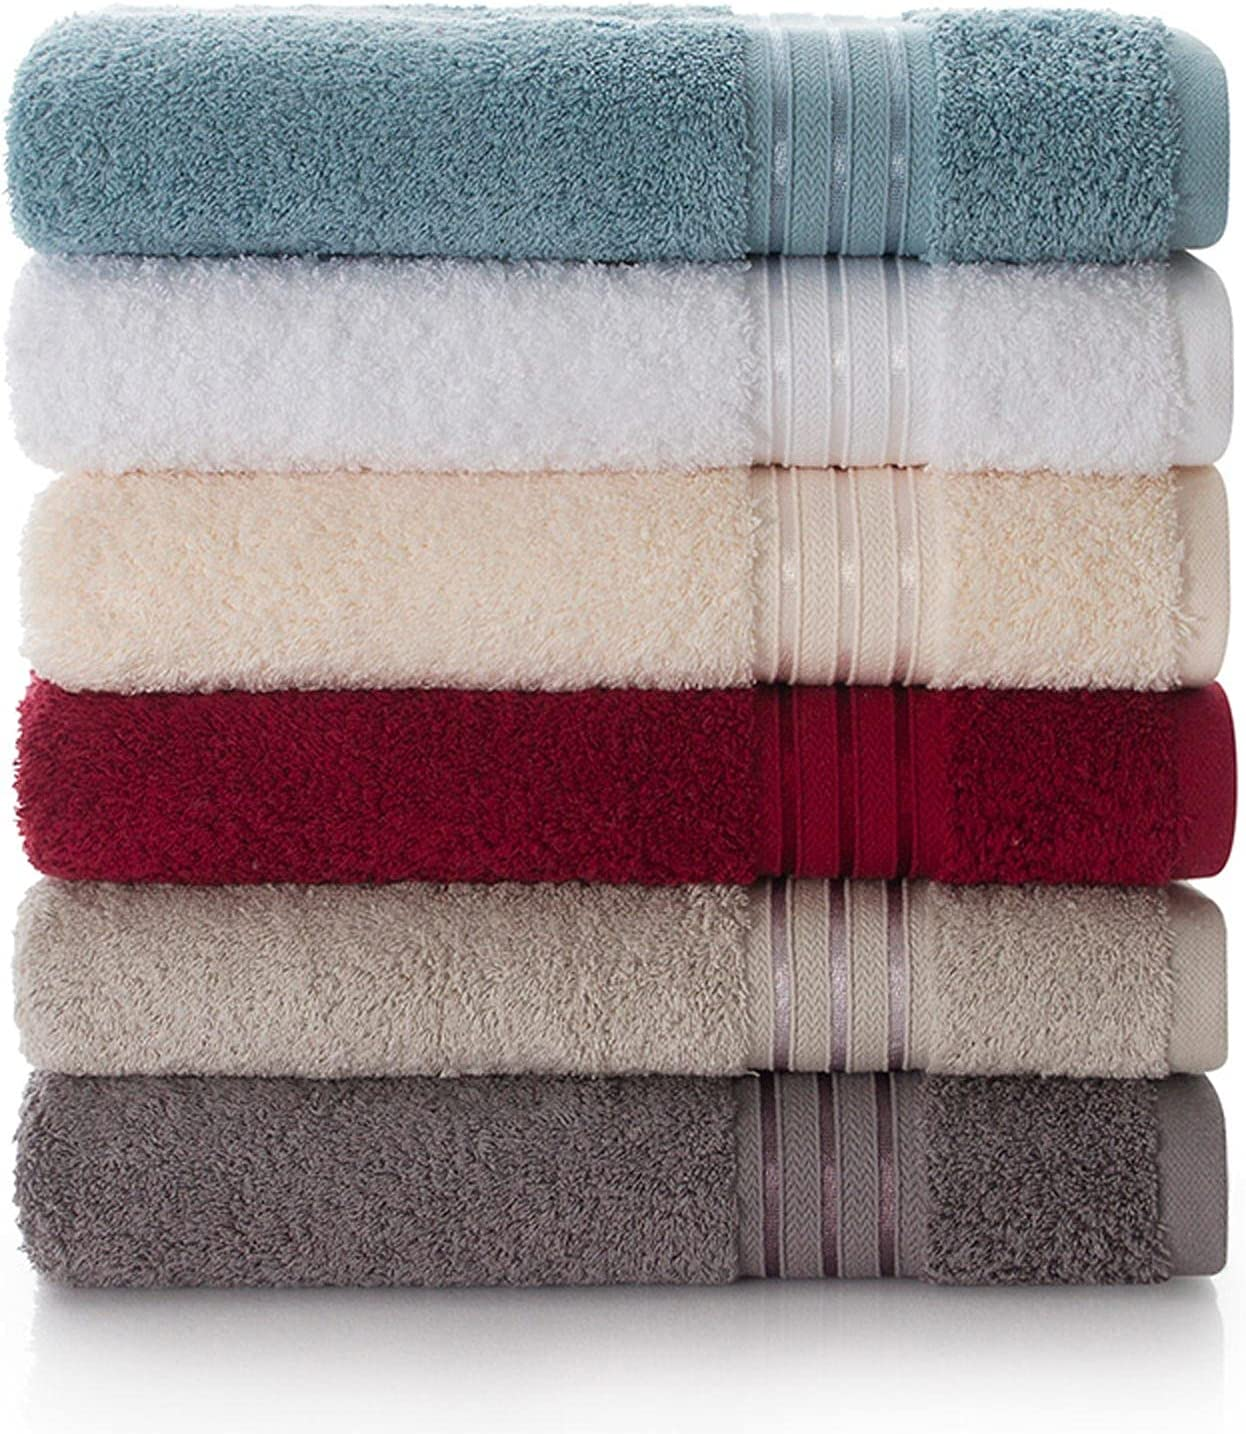 YITIANTIAN Finally resale start Towels Bath Sheets Now free shipping Set- Extra-Absorbe Set